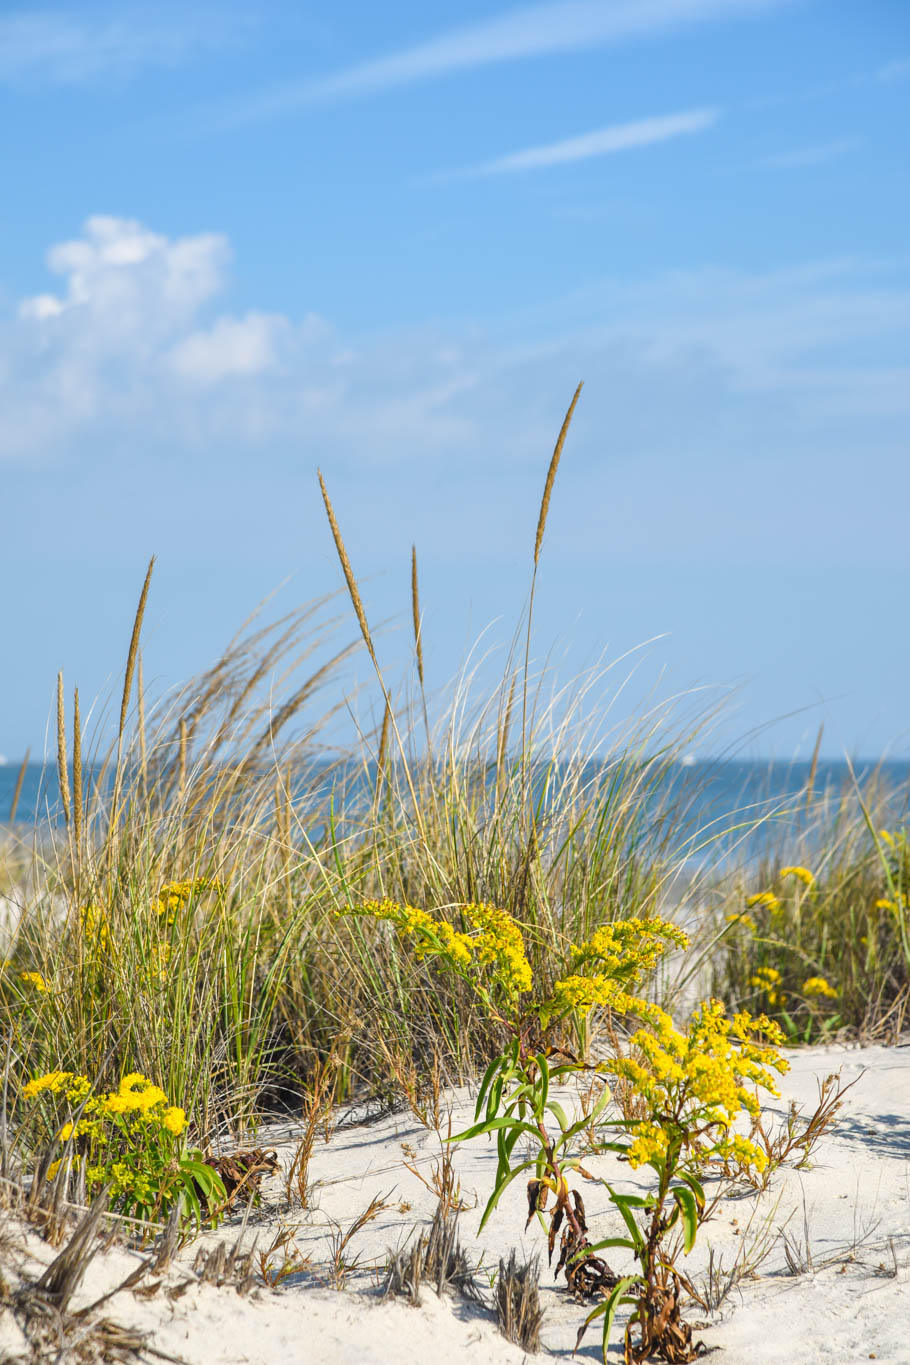 Sand dunes with a breeze of salty air blowing